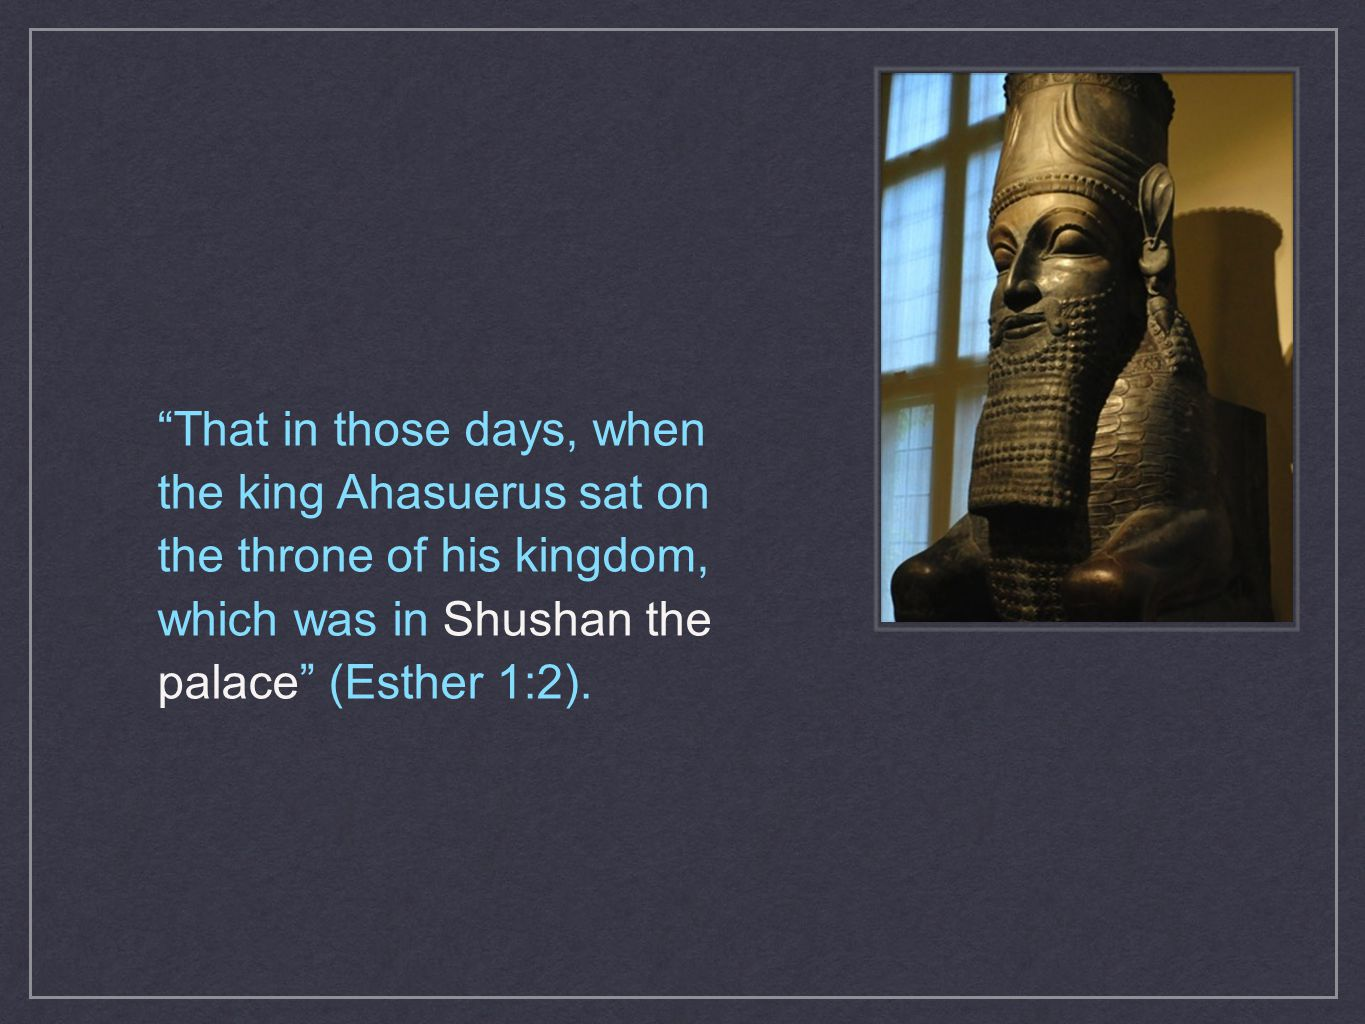 """That in those days, when the king Ahasuerus sat on the throne of his kingdom, which was in Shushan the palace"" (Esther 1:2)."